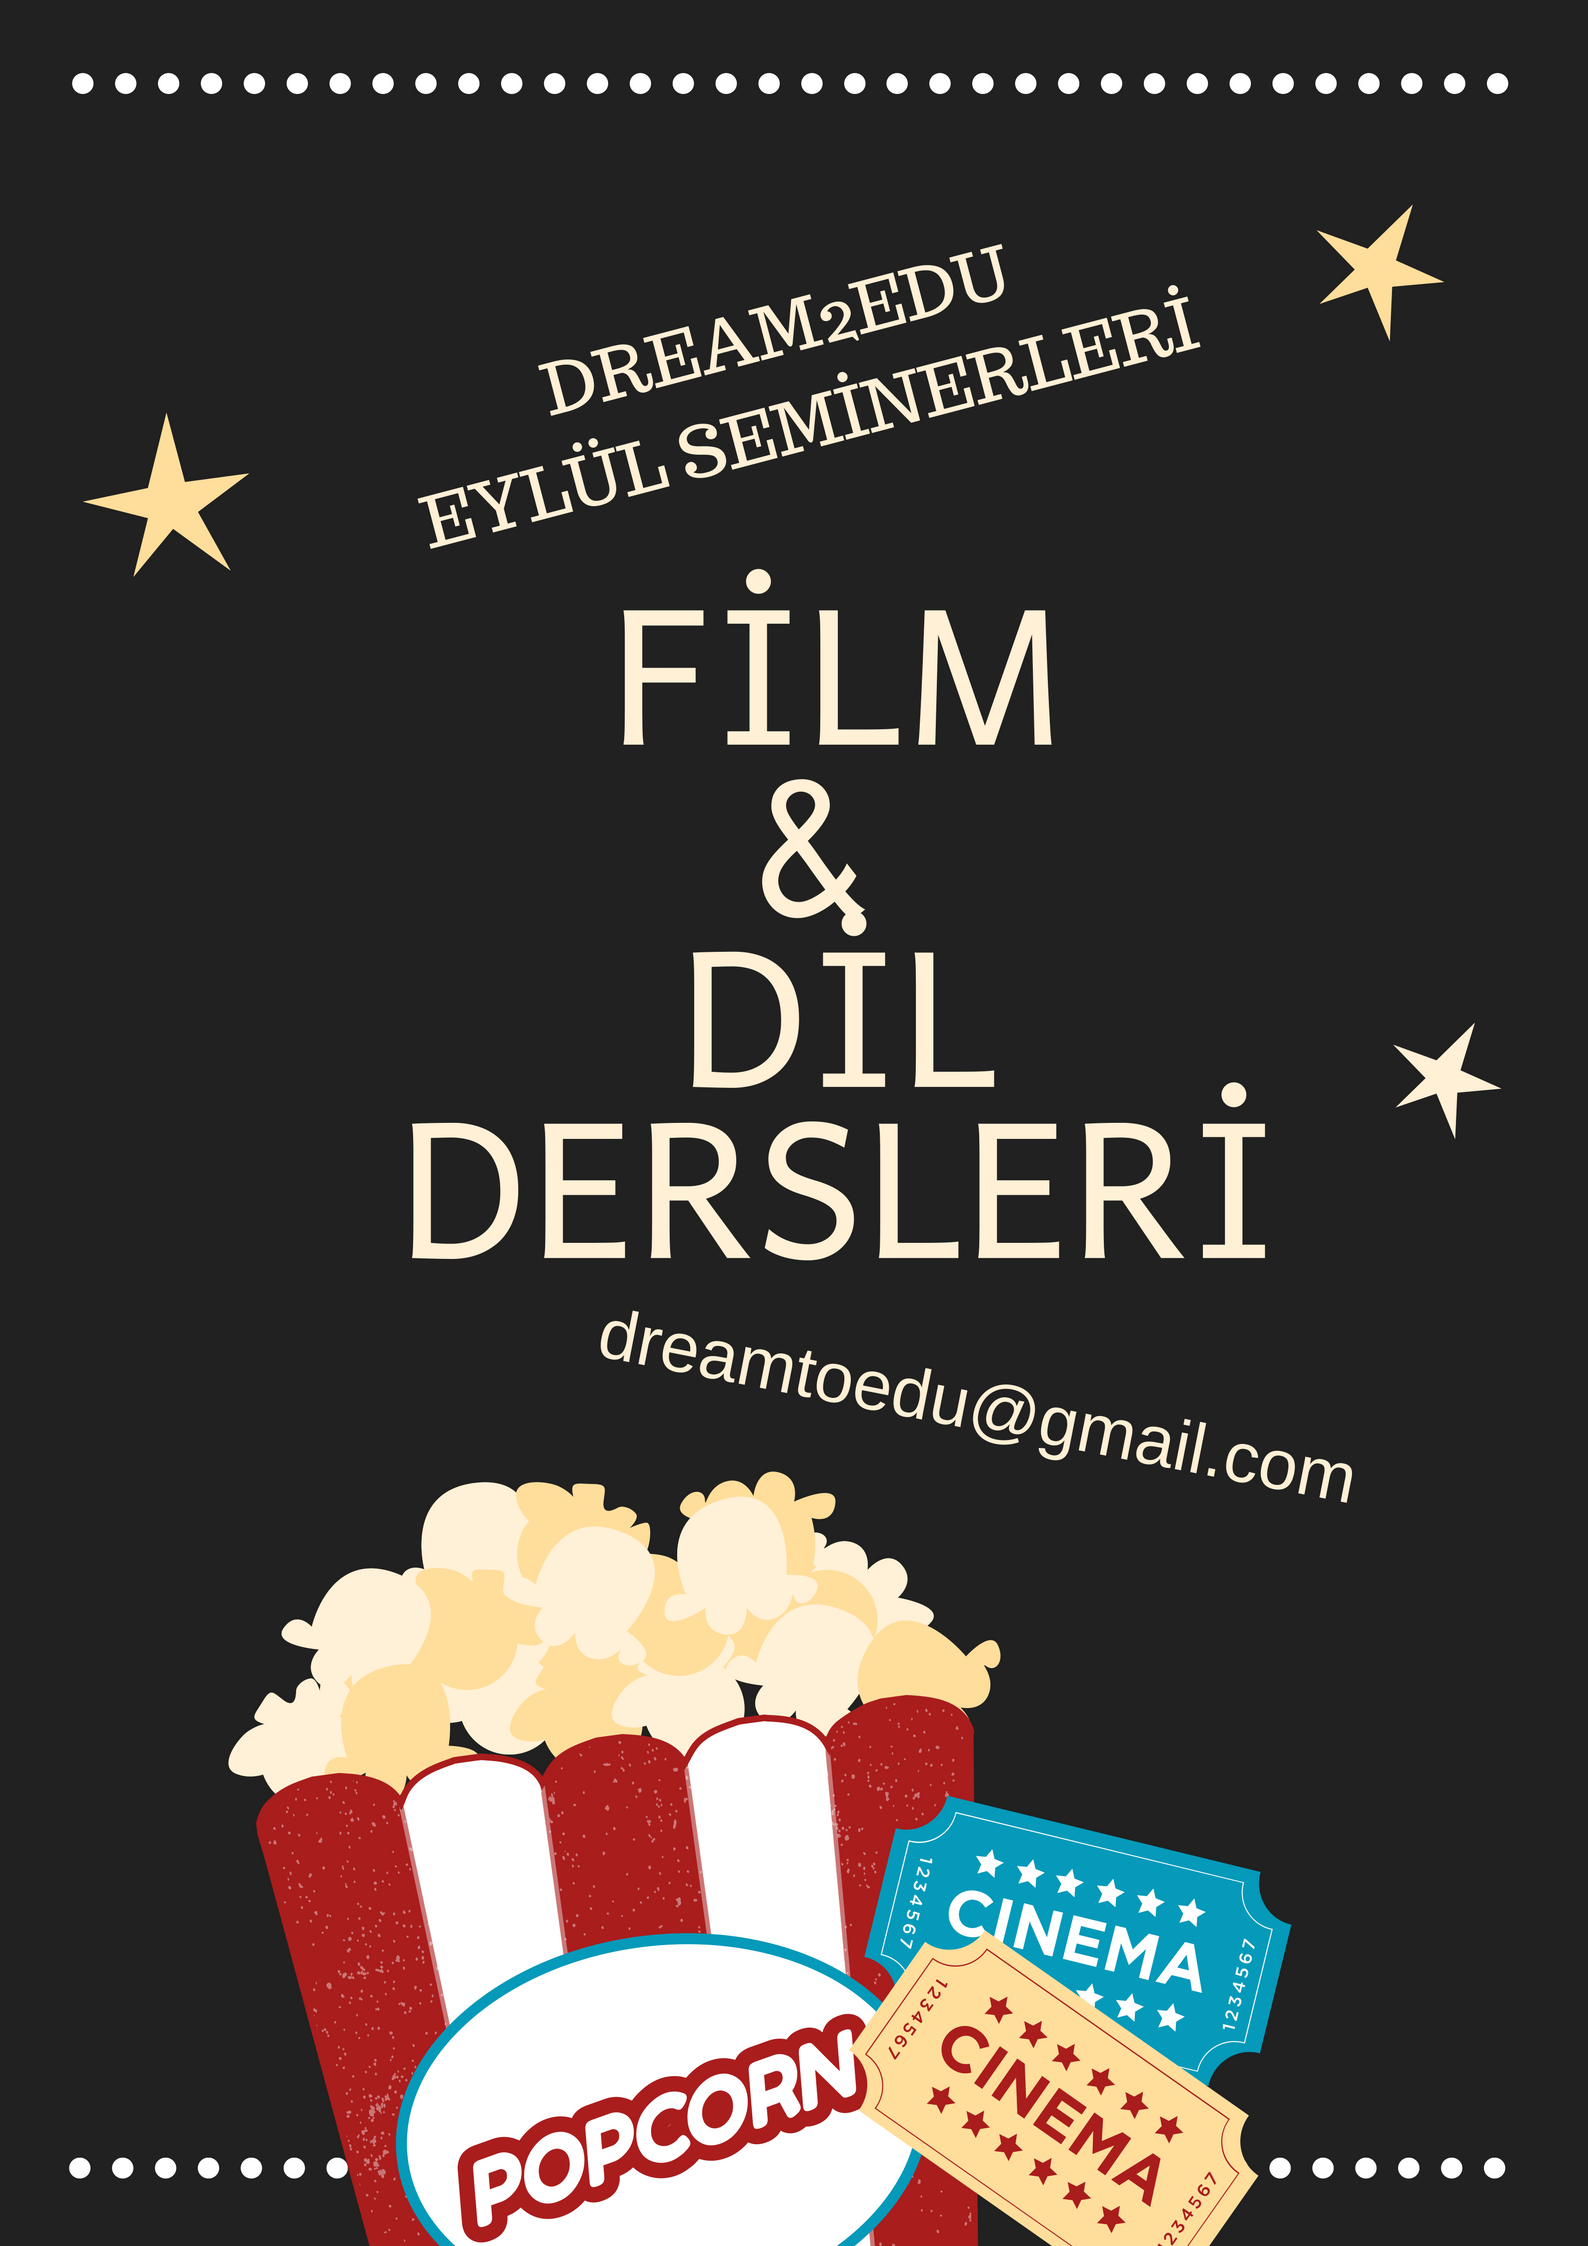 Film ve Dil Dersleri Dream2Edu.jpg